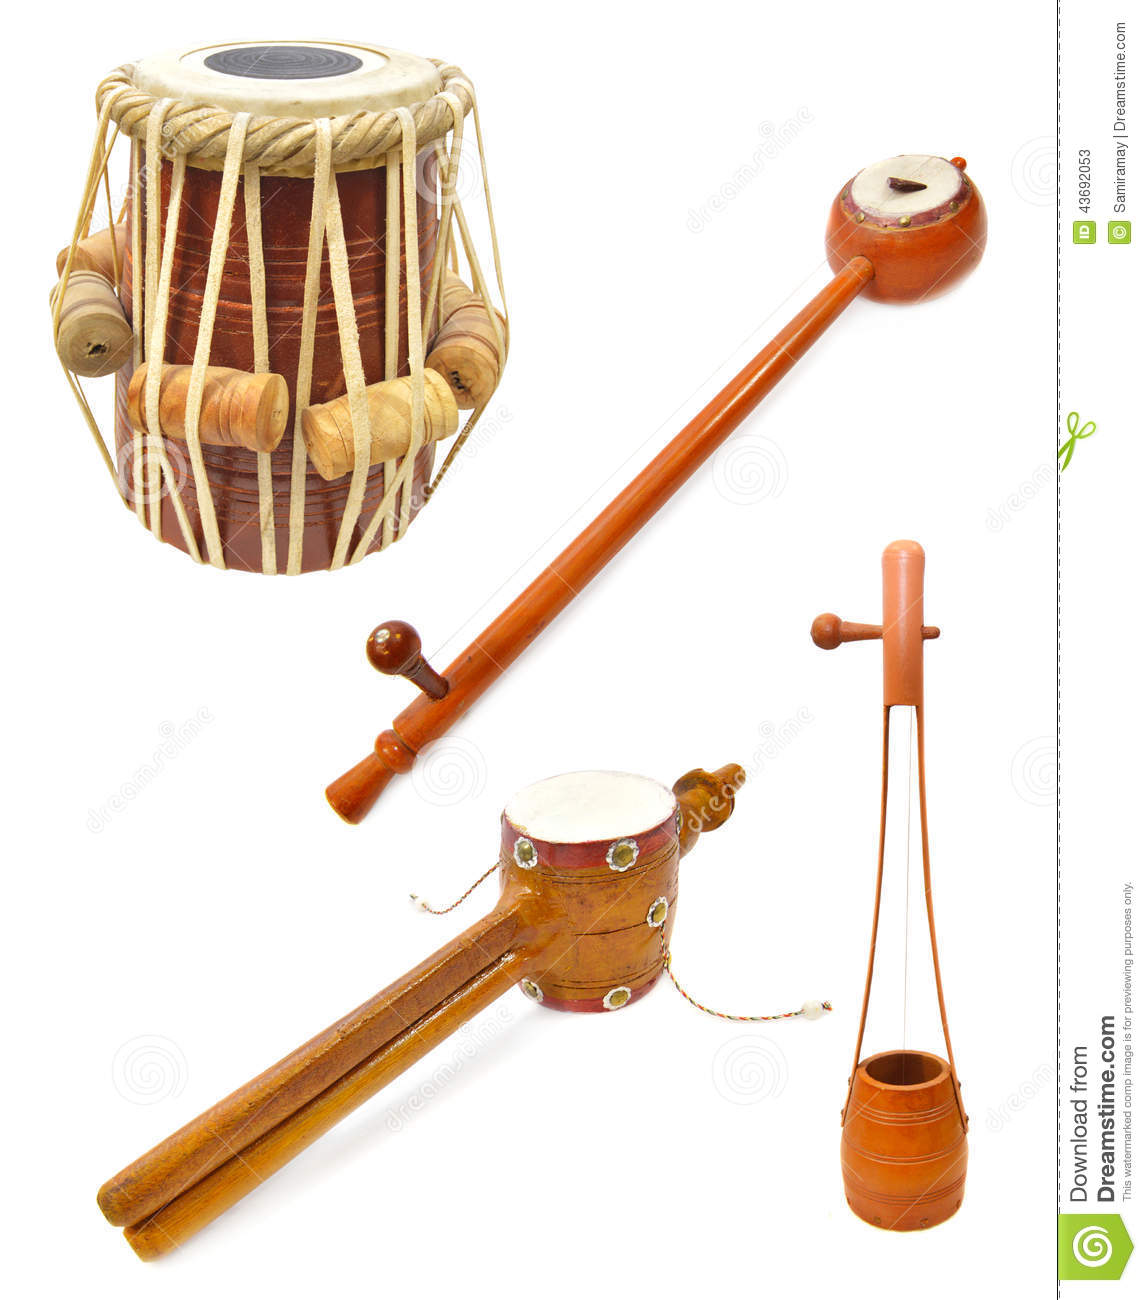 Indian musical instruments stock image. Image of homemade ...